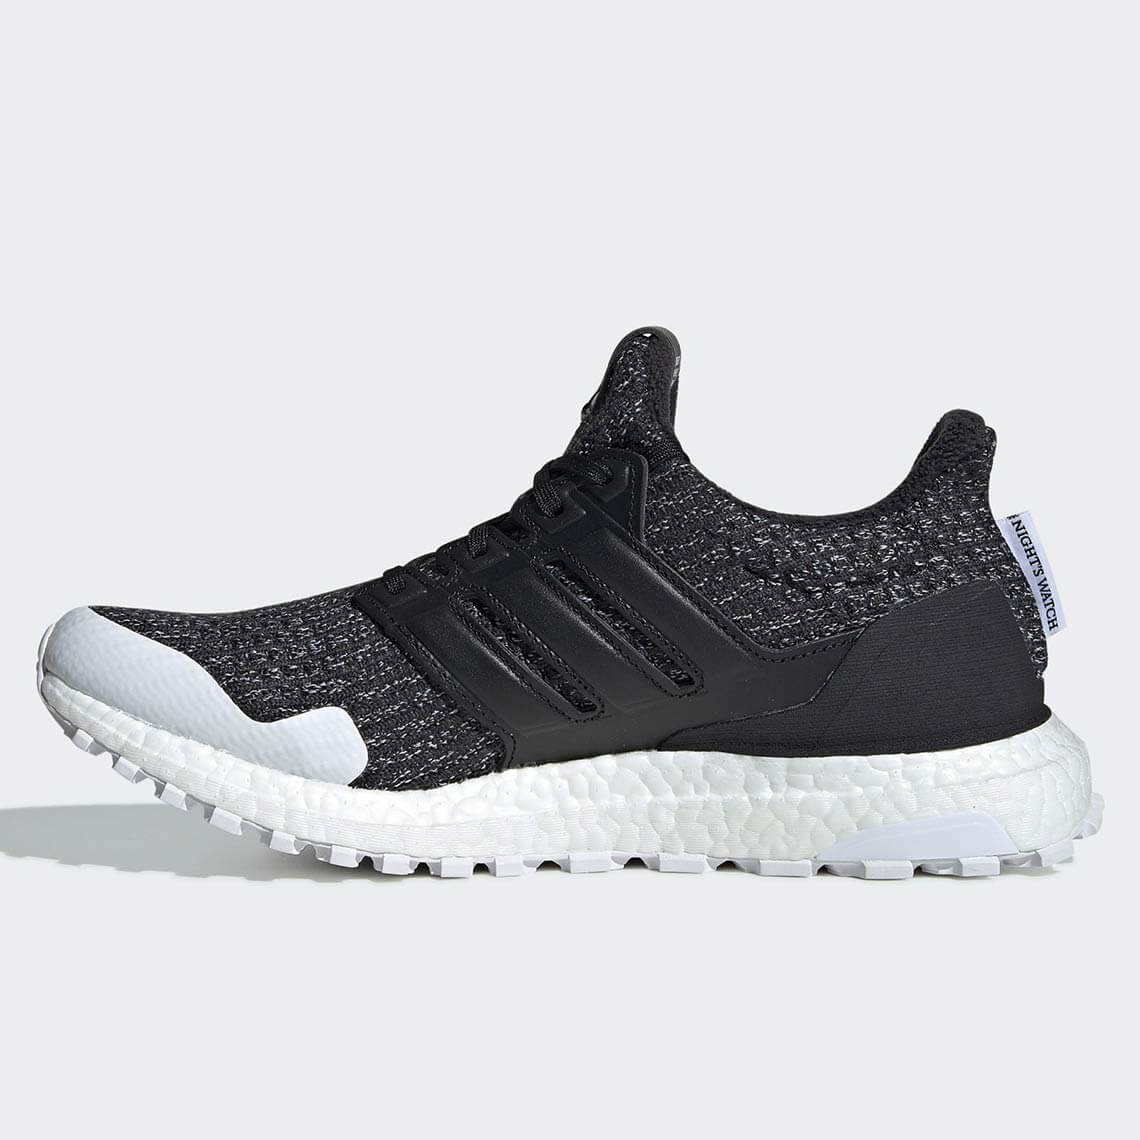 game of thrones adidas ultra boost nights watch EE3707 6